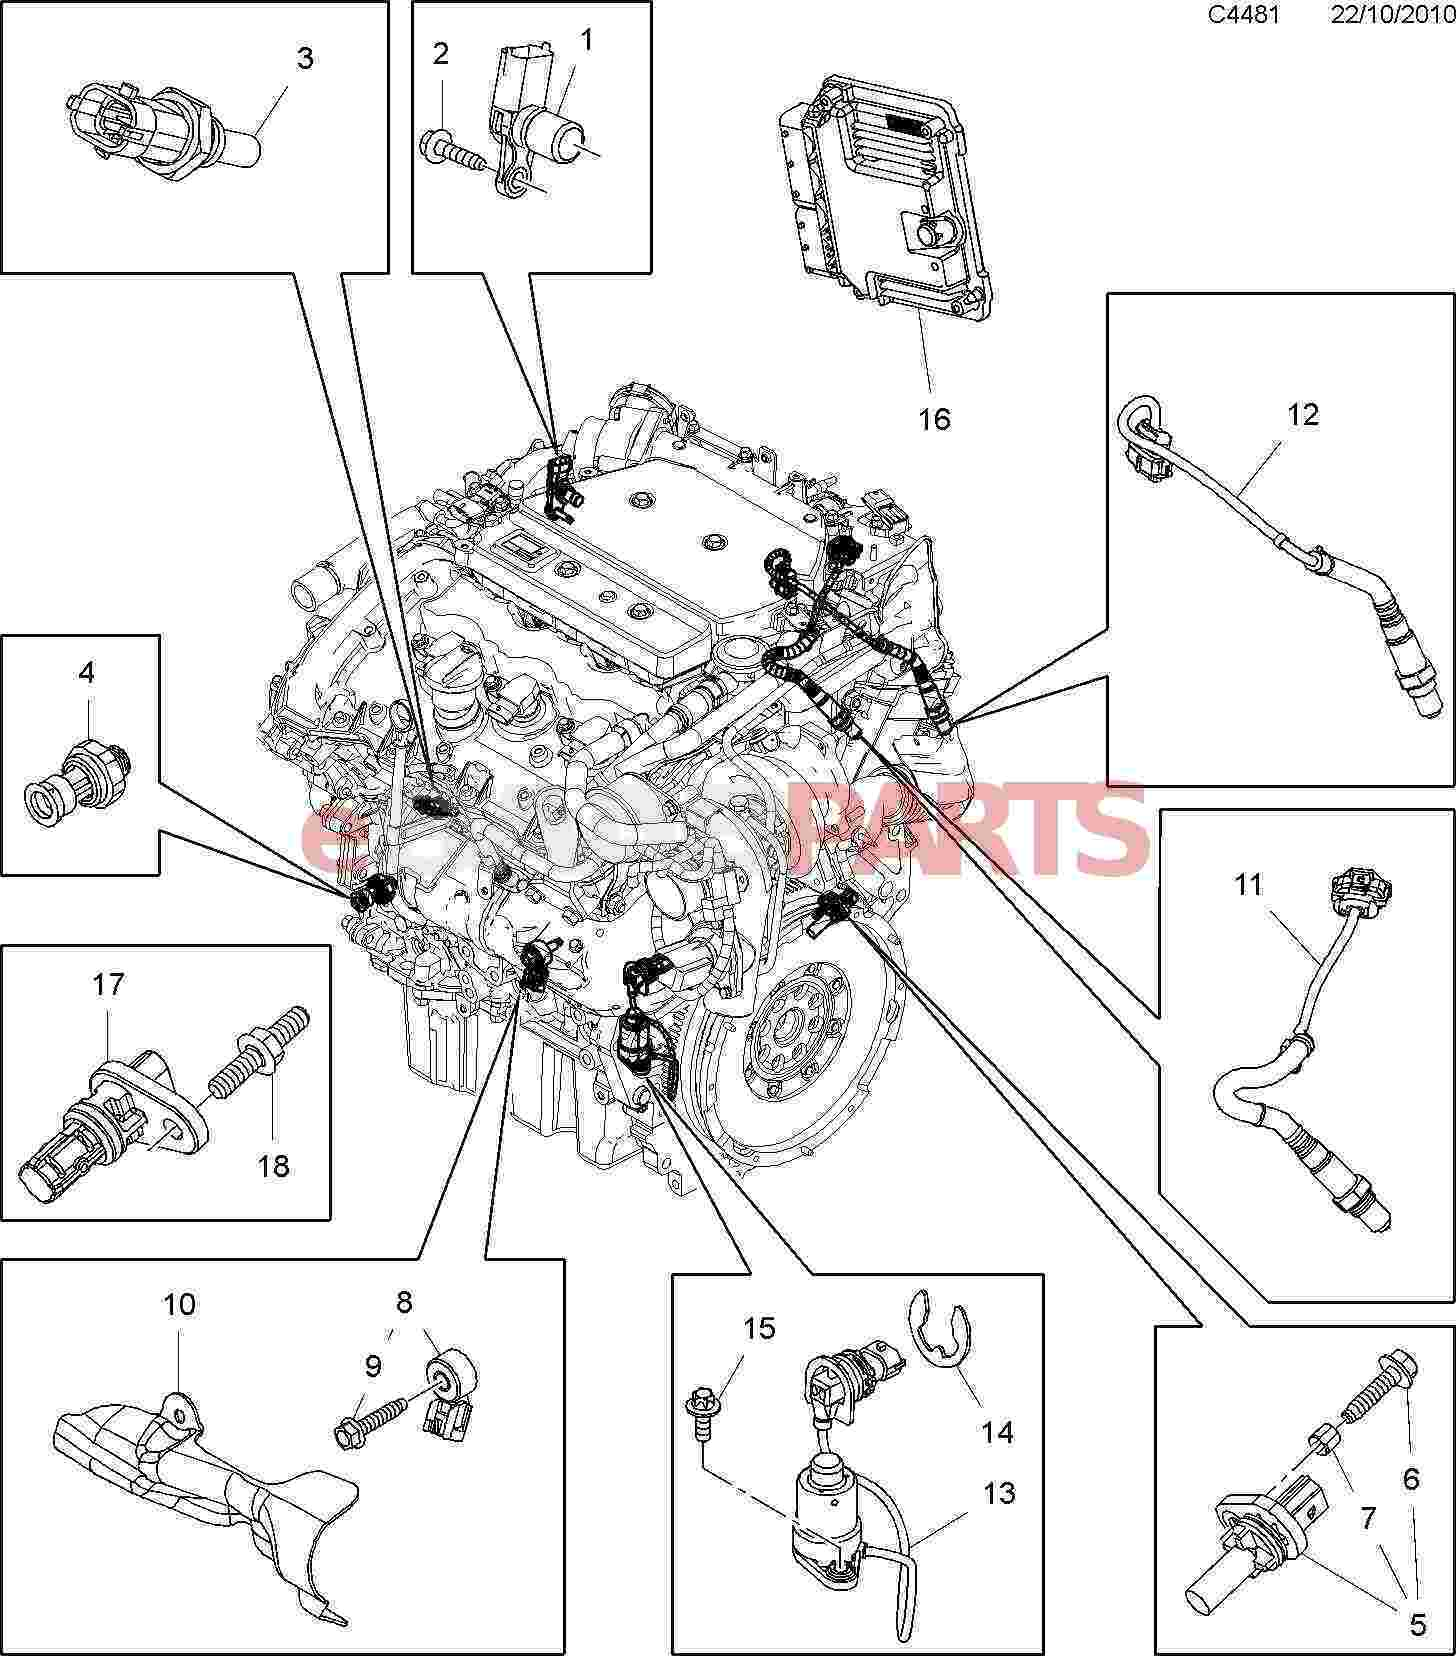 12621649 saab pressure sensor genuine saab parts from esaabparts